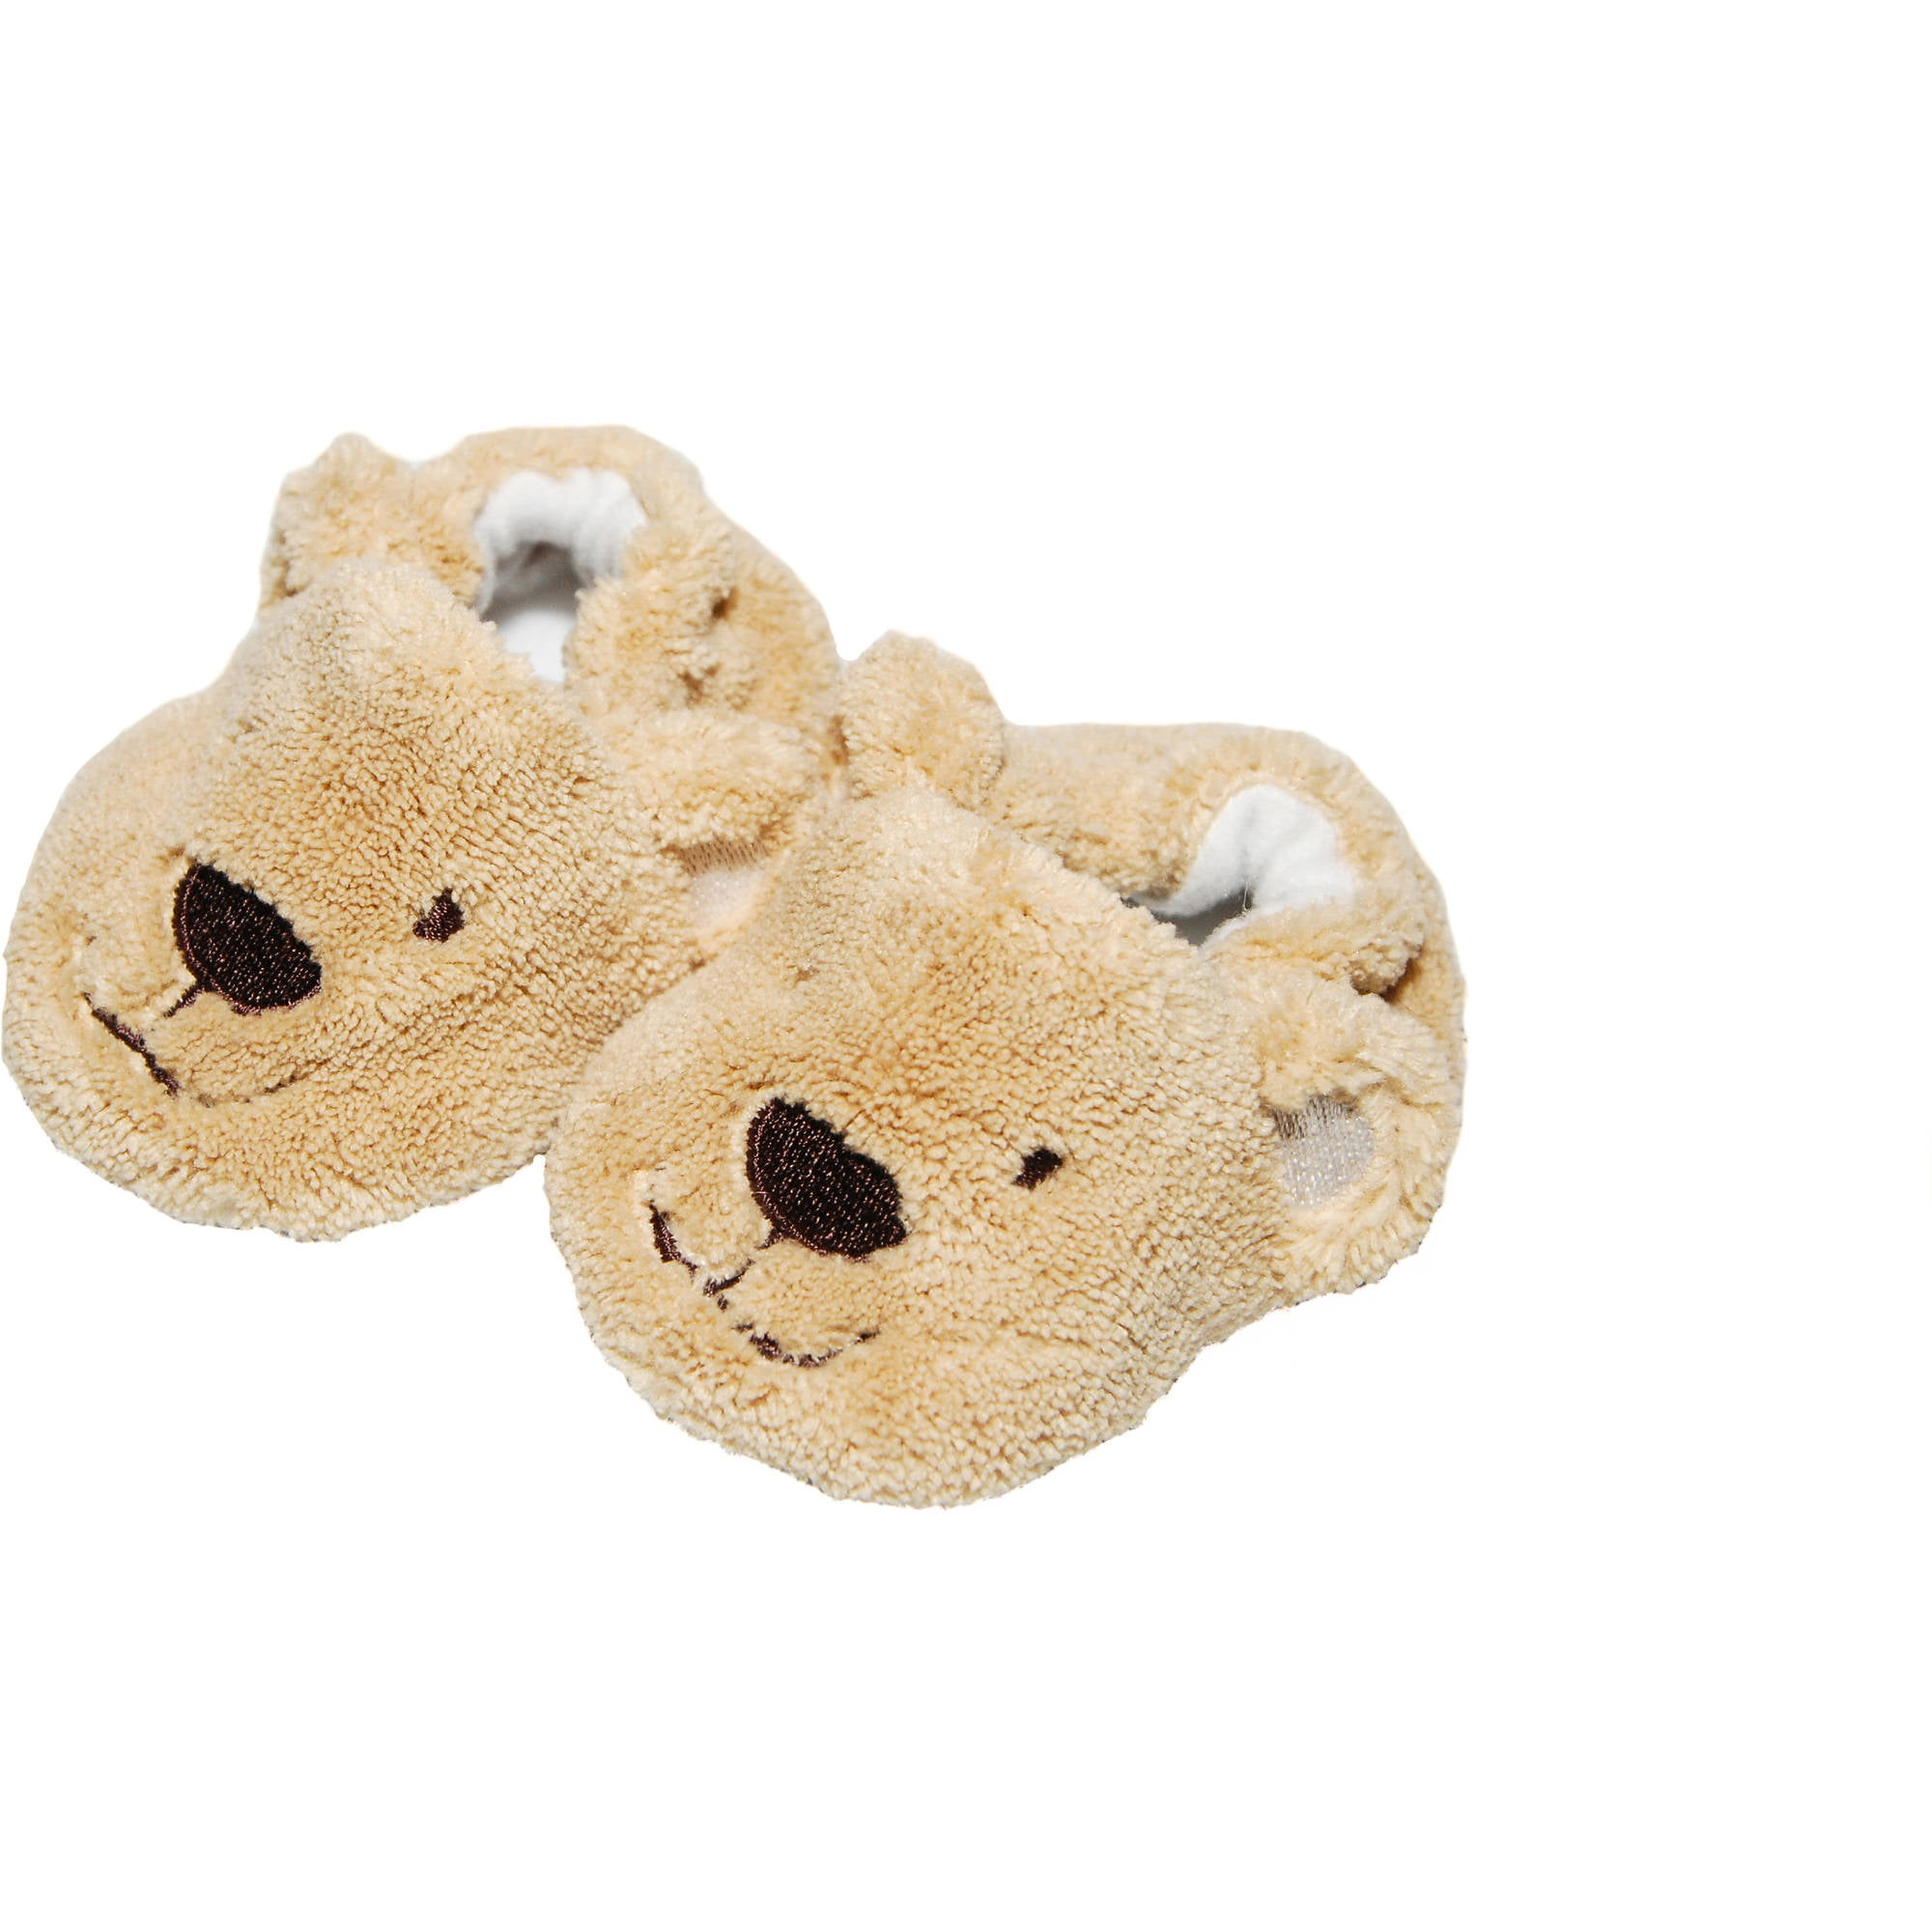 Newborn Baby Boy Bear Slippers, 0-3M - Walmart.com